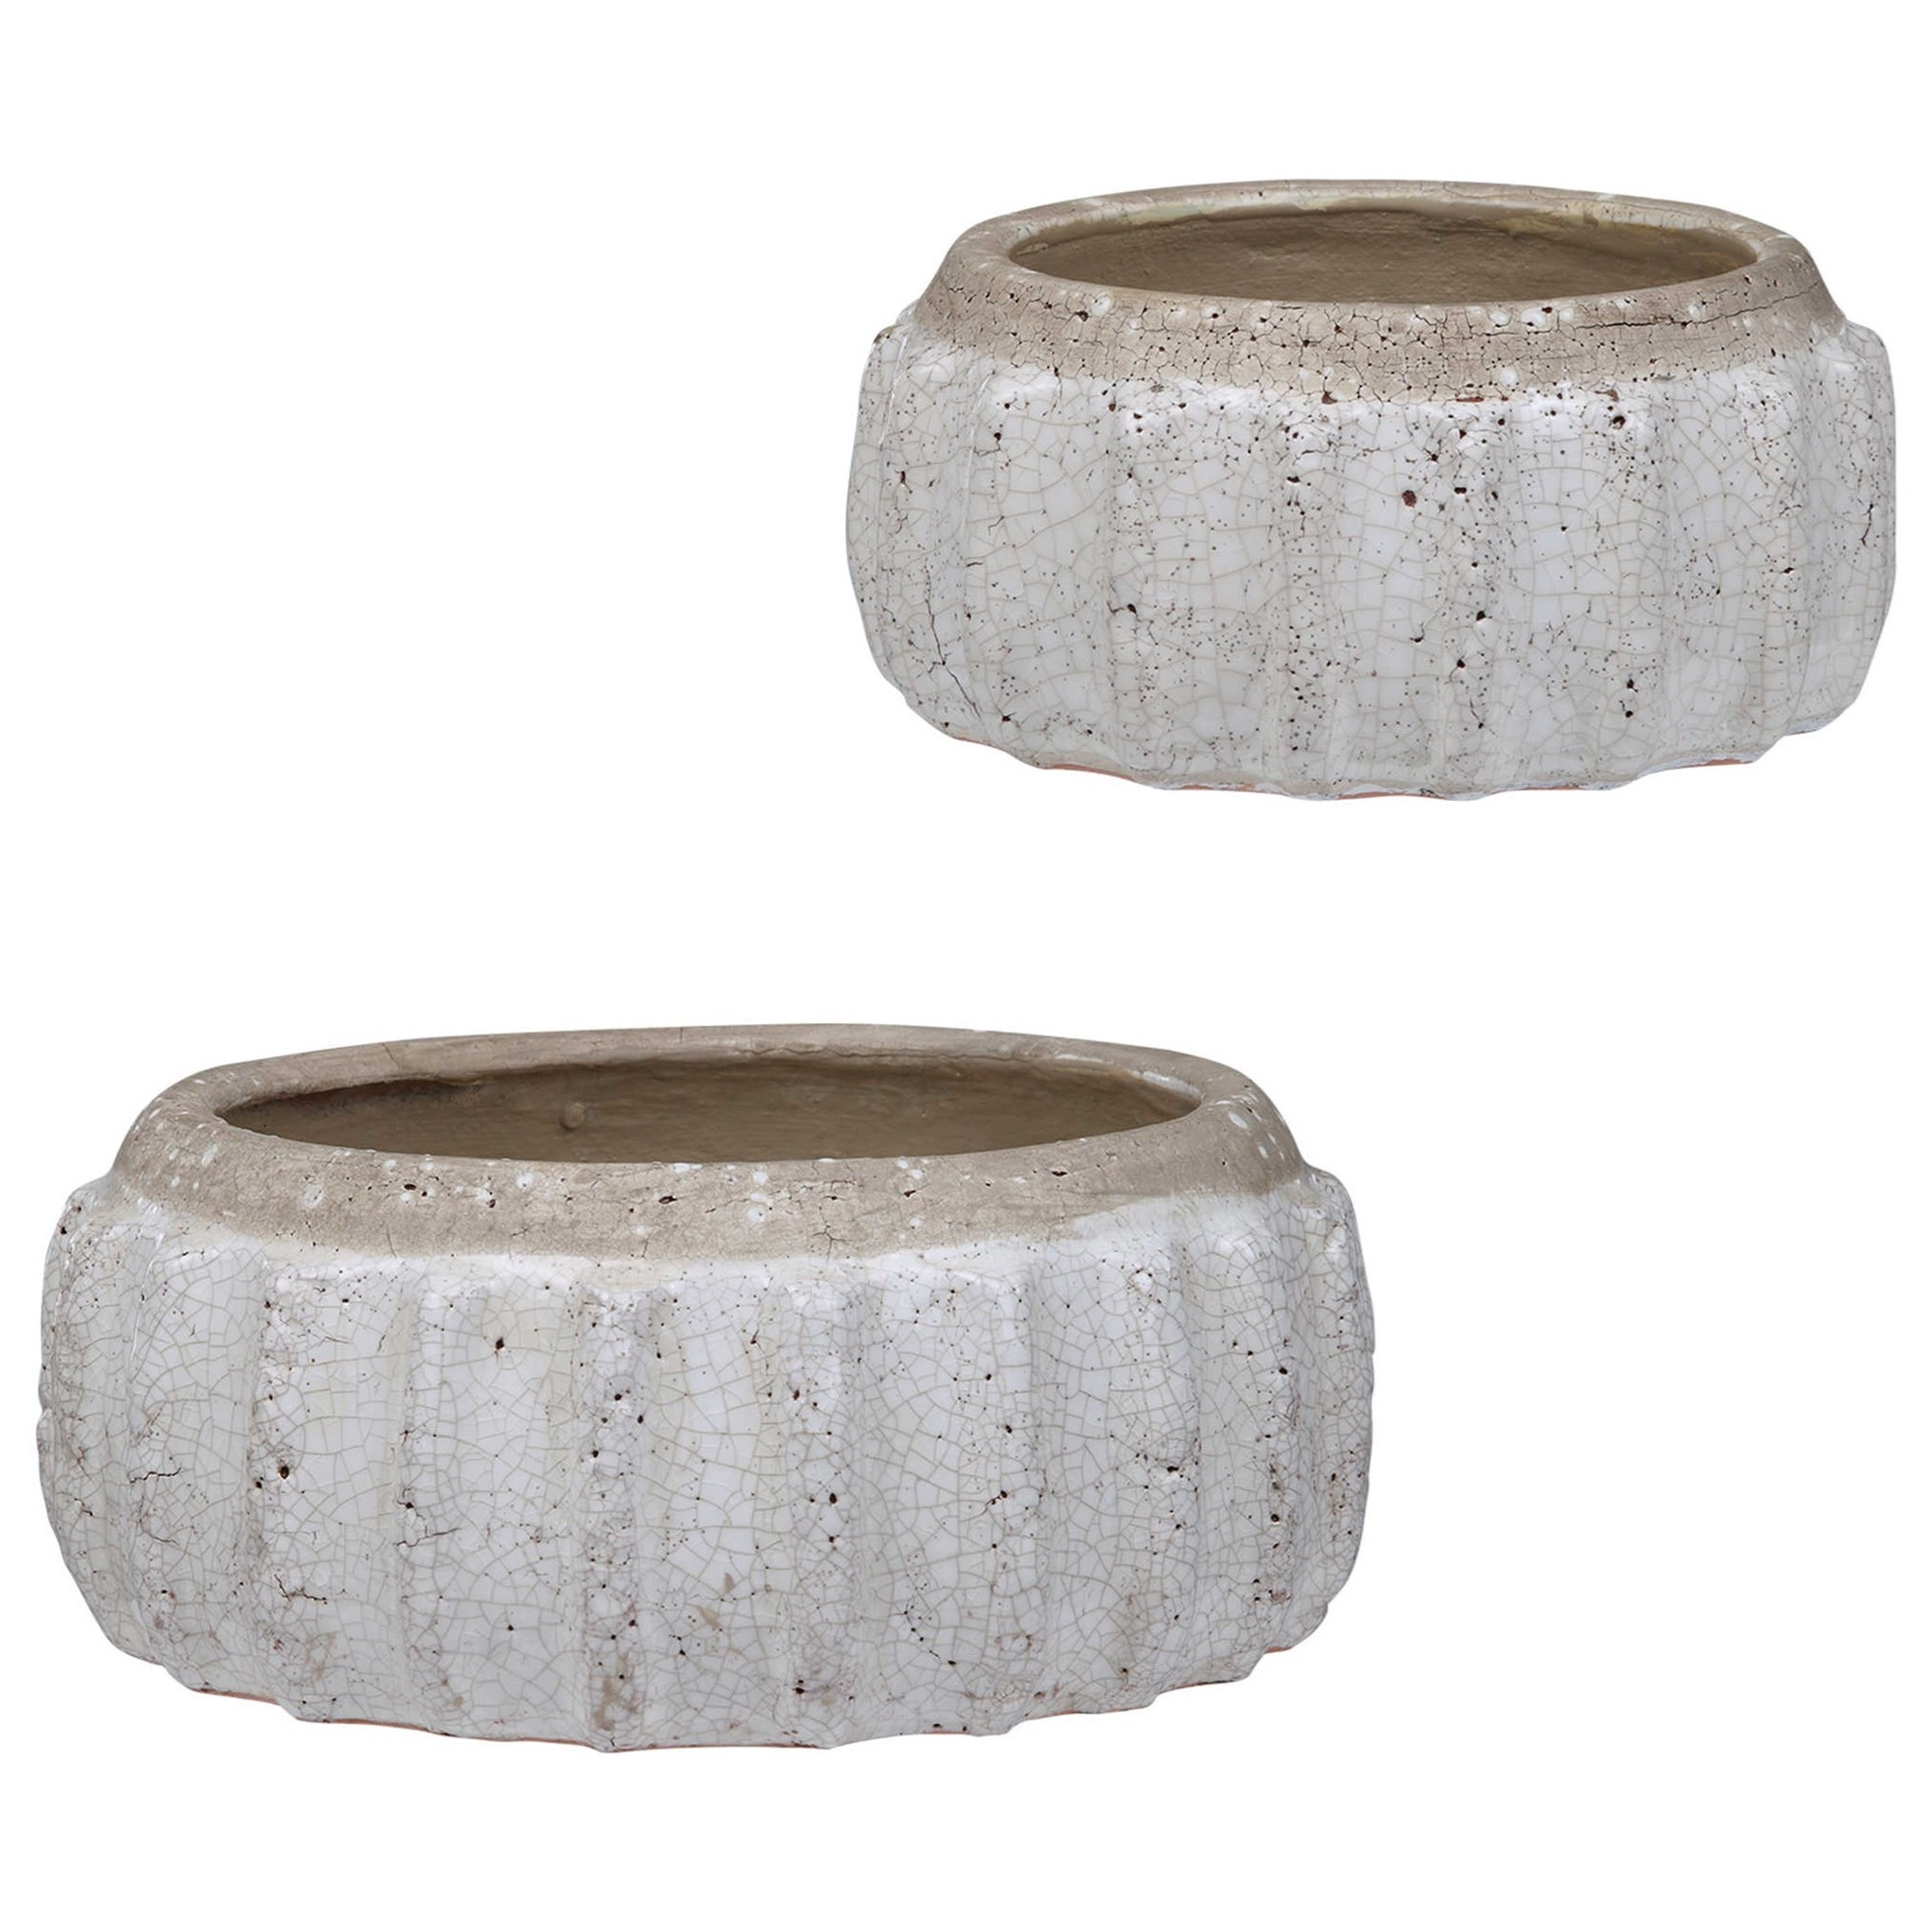 Accessories Azariah Distressed Bowls, S/2 by Uttermost at Del Sol Furniture